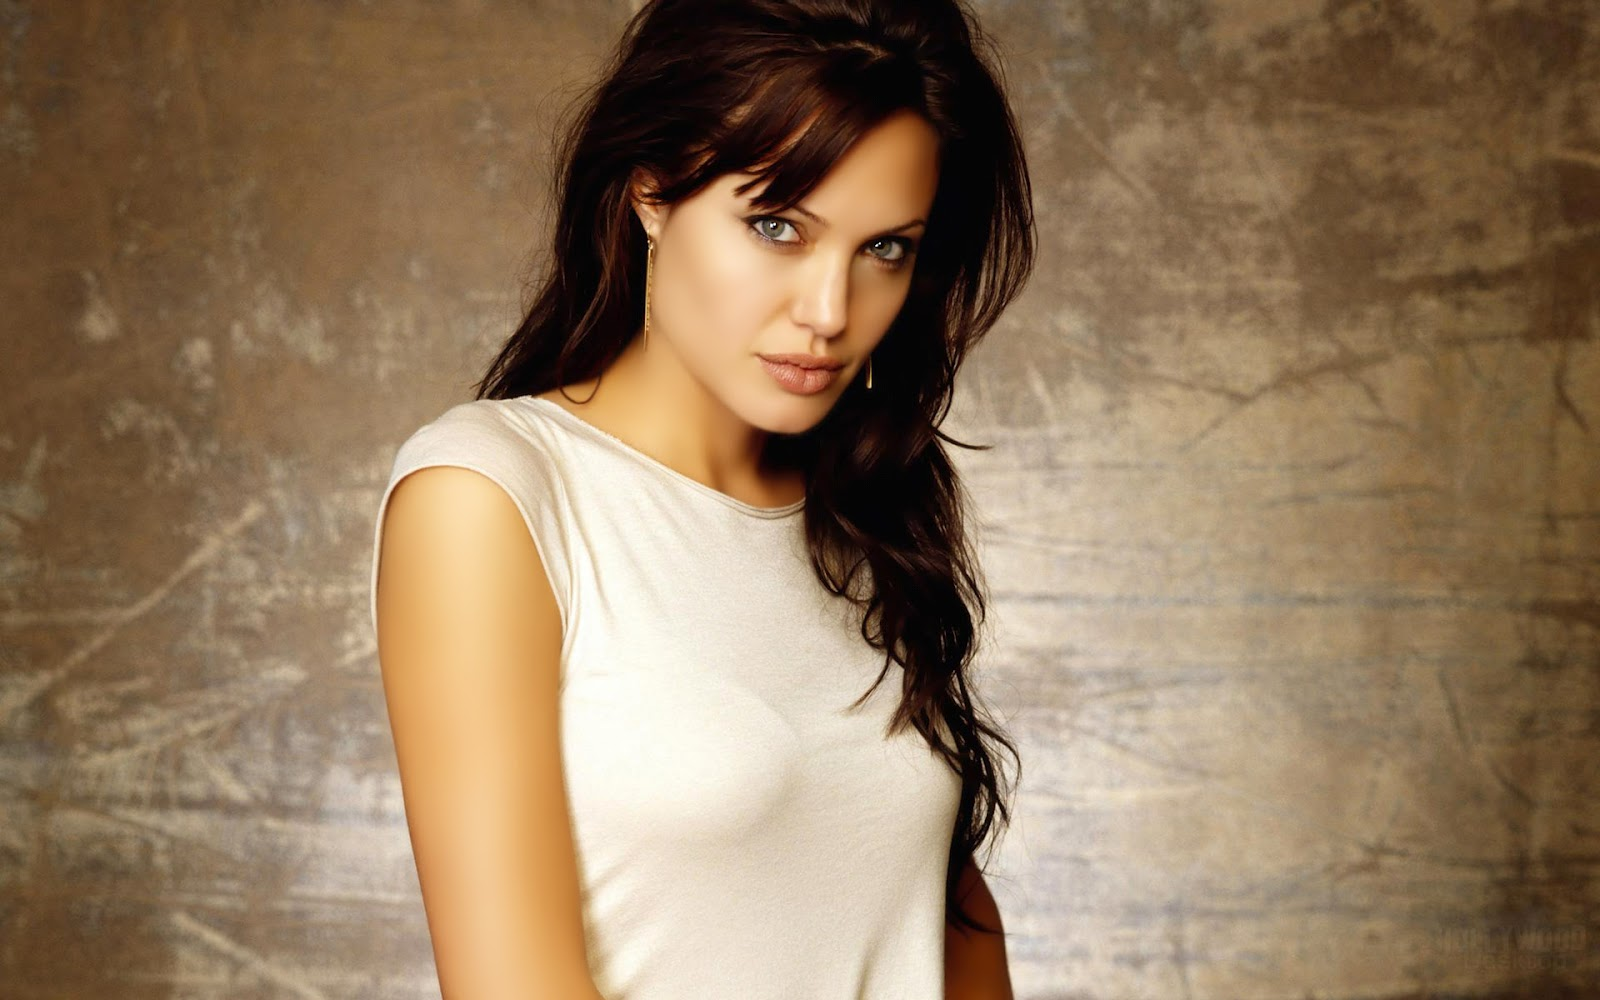 August 2012 hollywood key - Hollywood actress full hd wallpaper ...